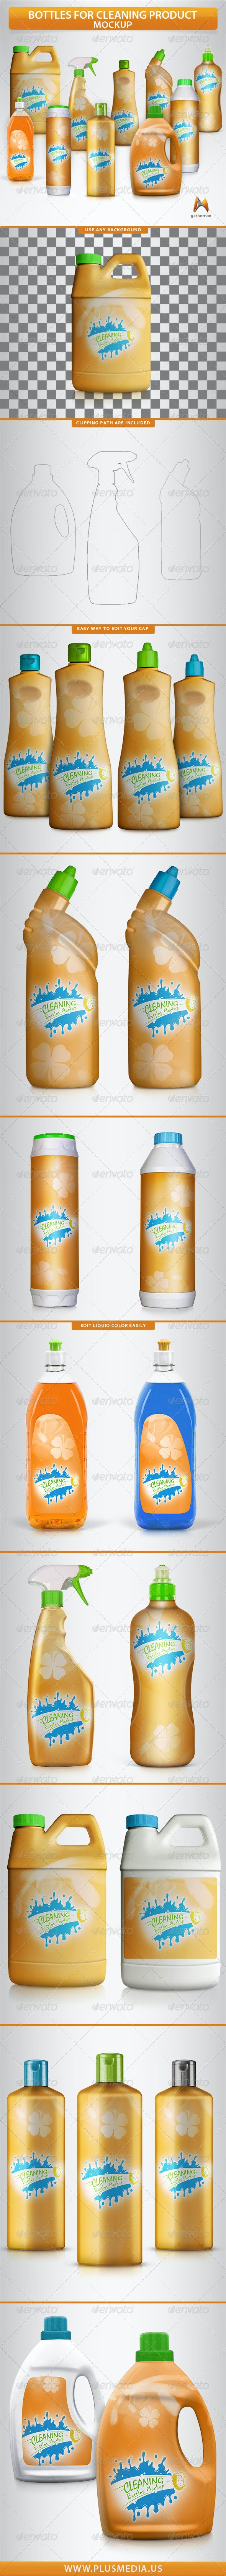 Bottles for Cleaning Products Mockup - Product Mock-Ups Graphics